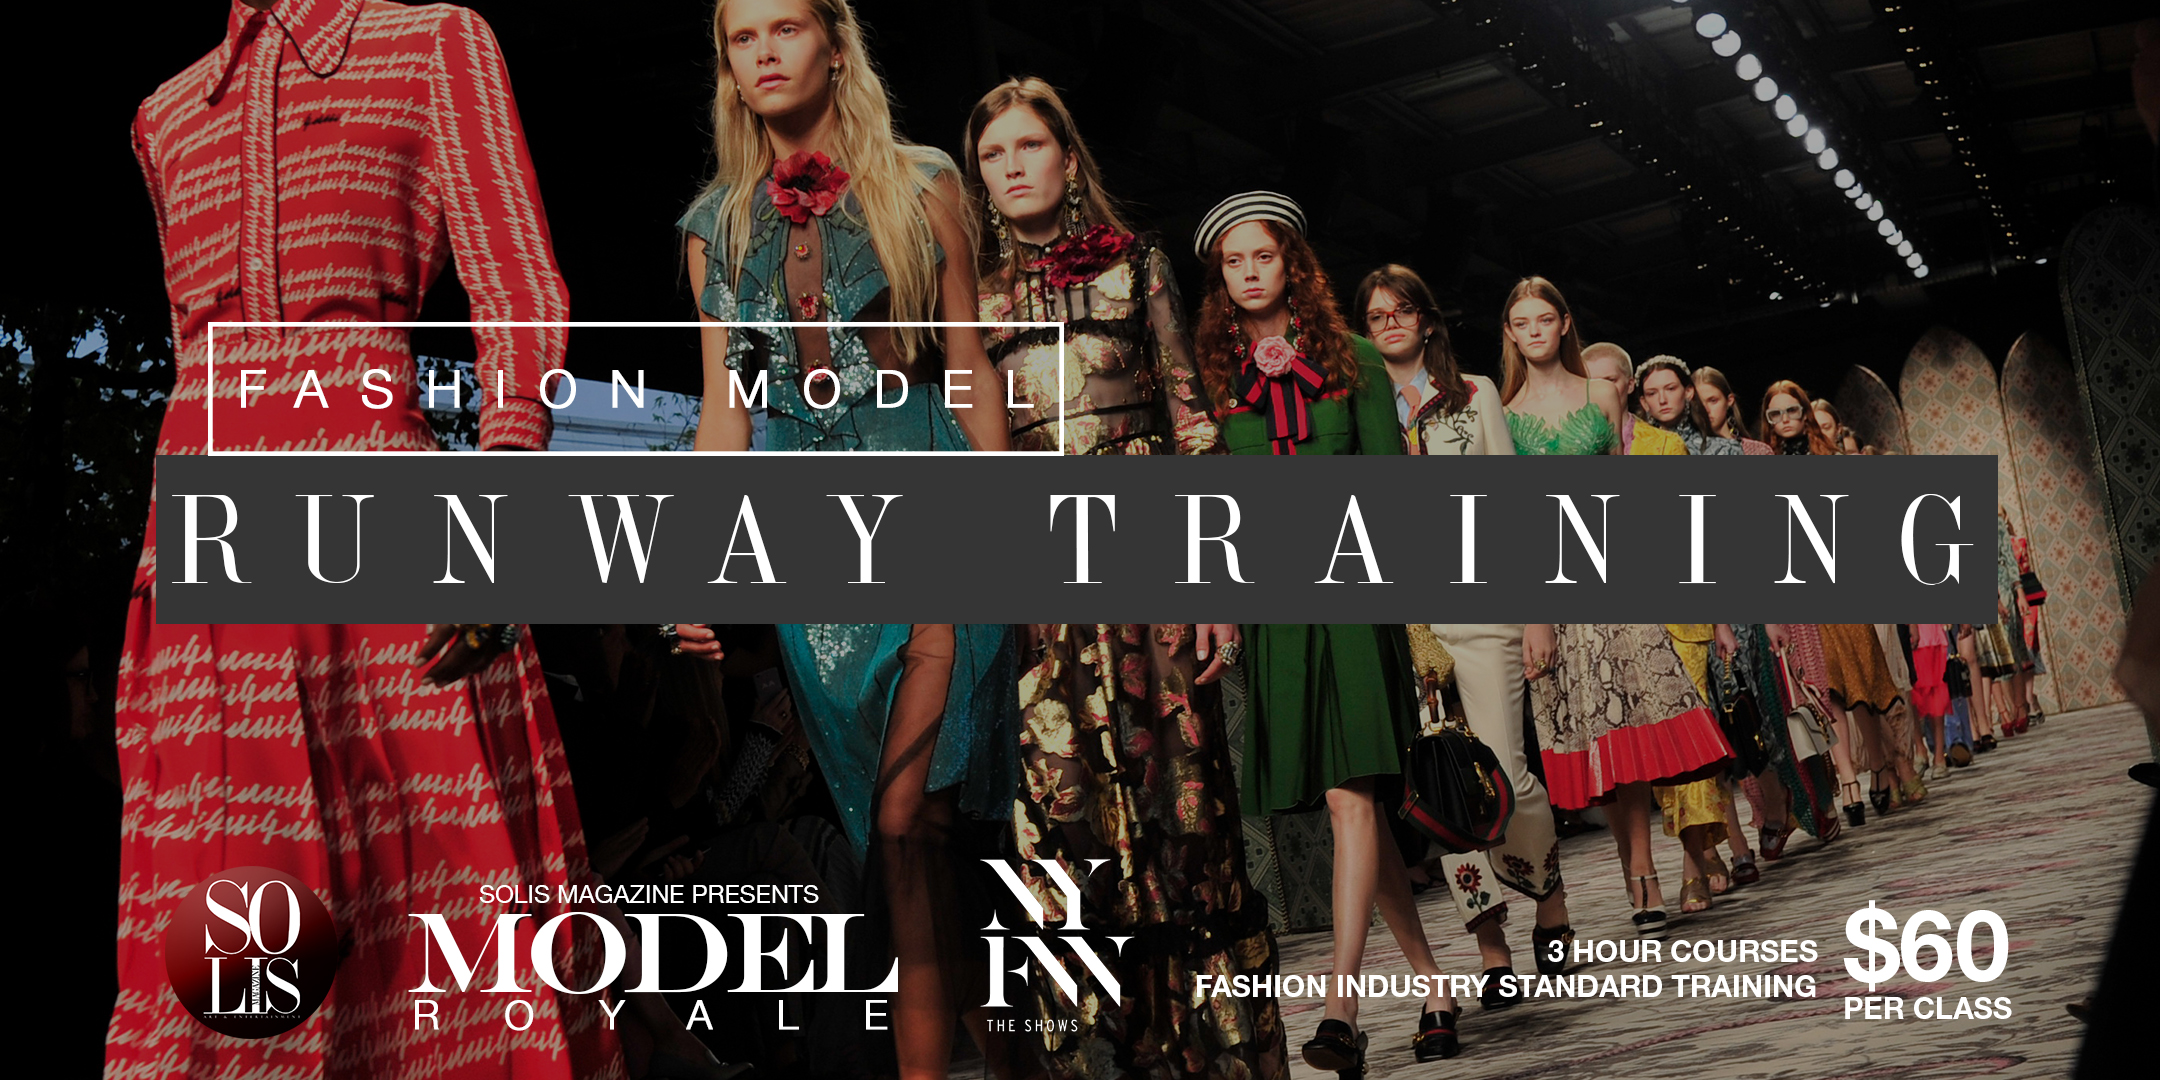 Professional Runway Training